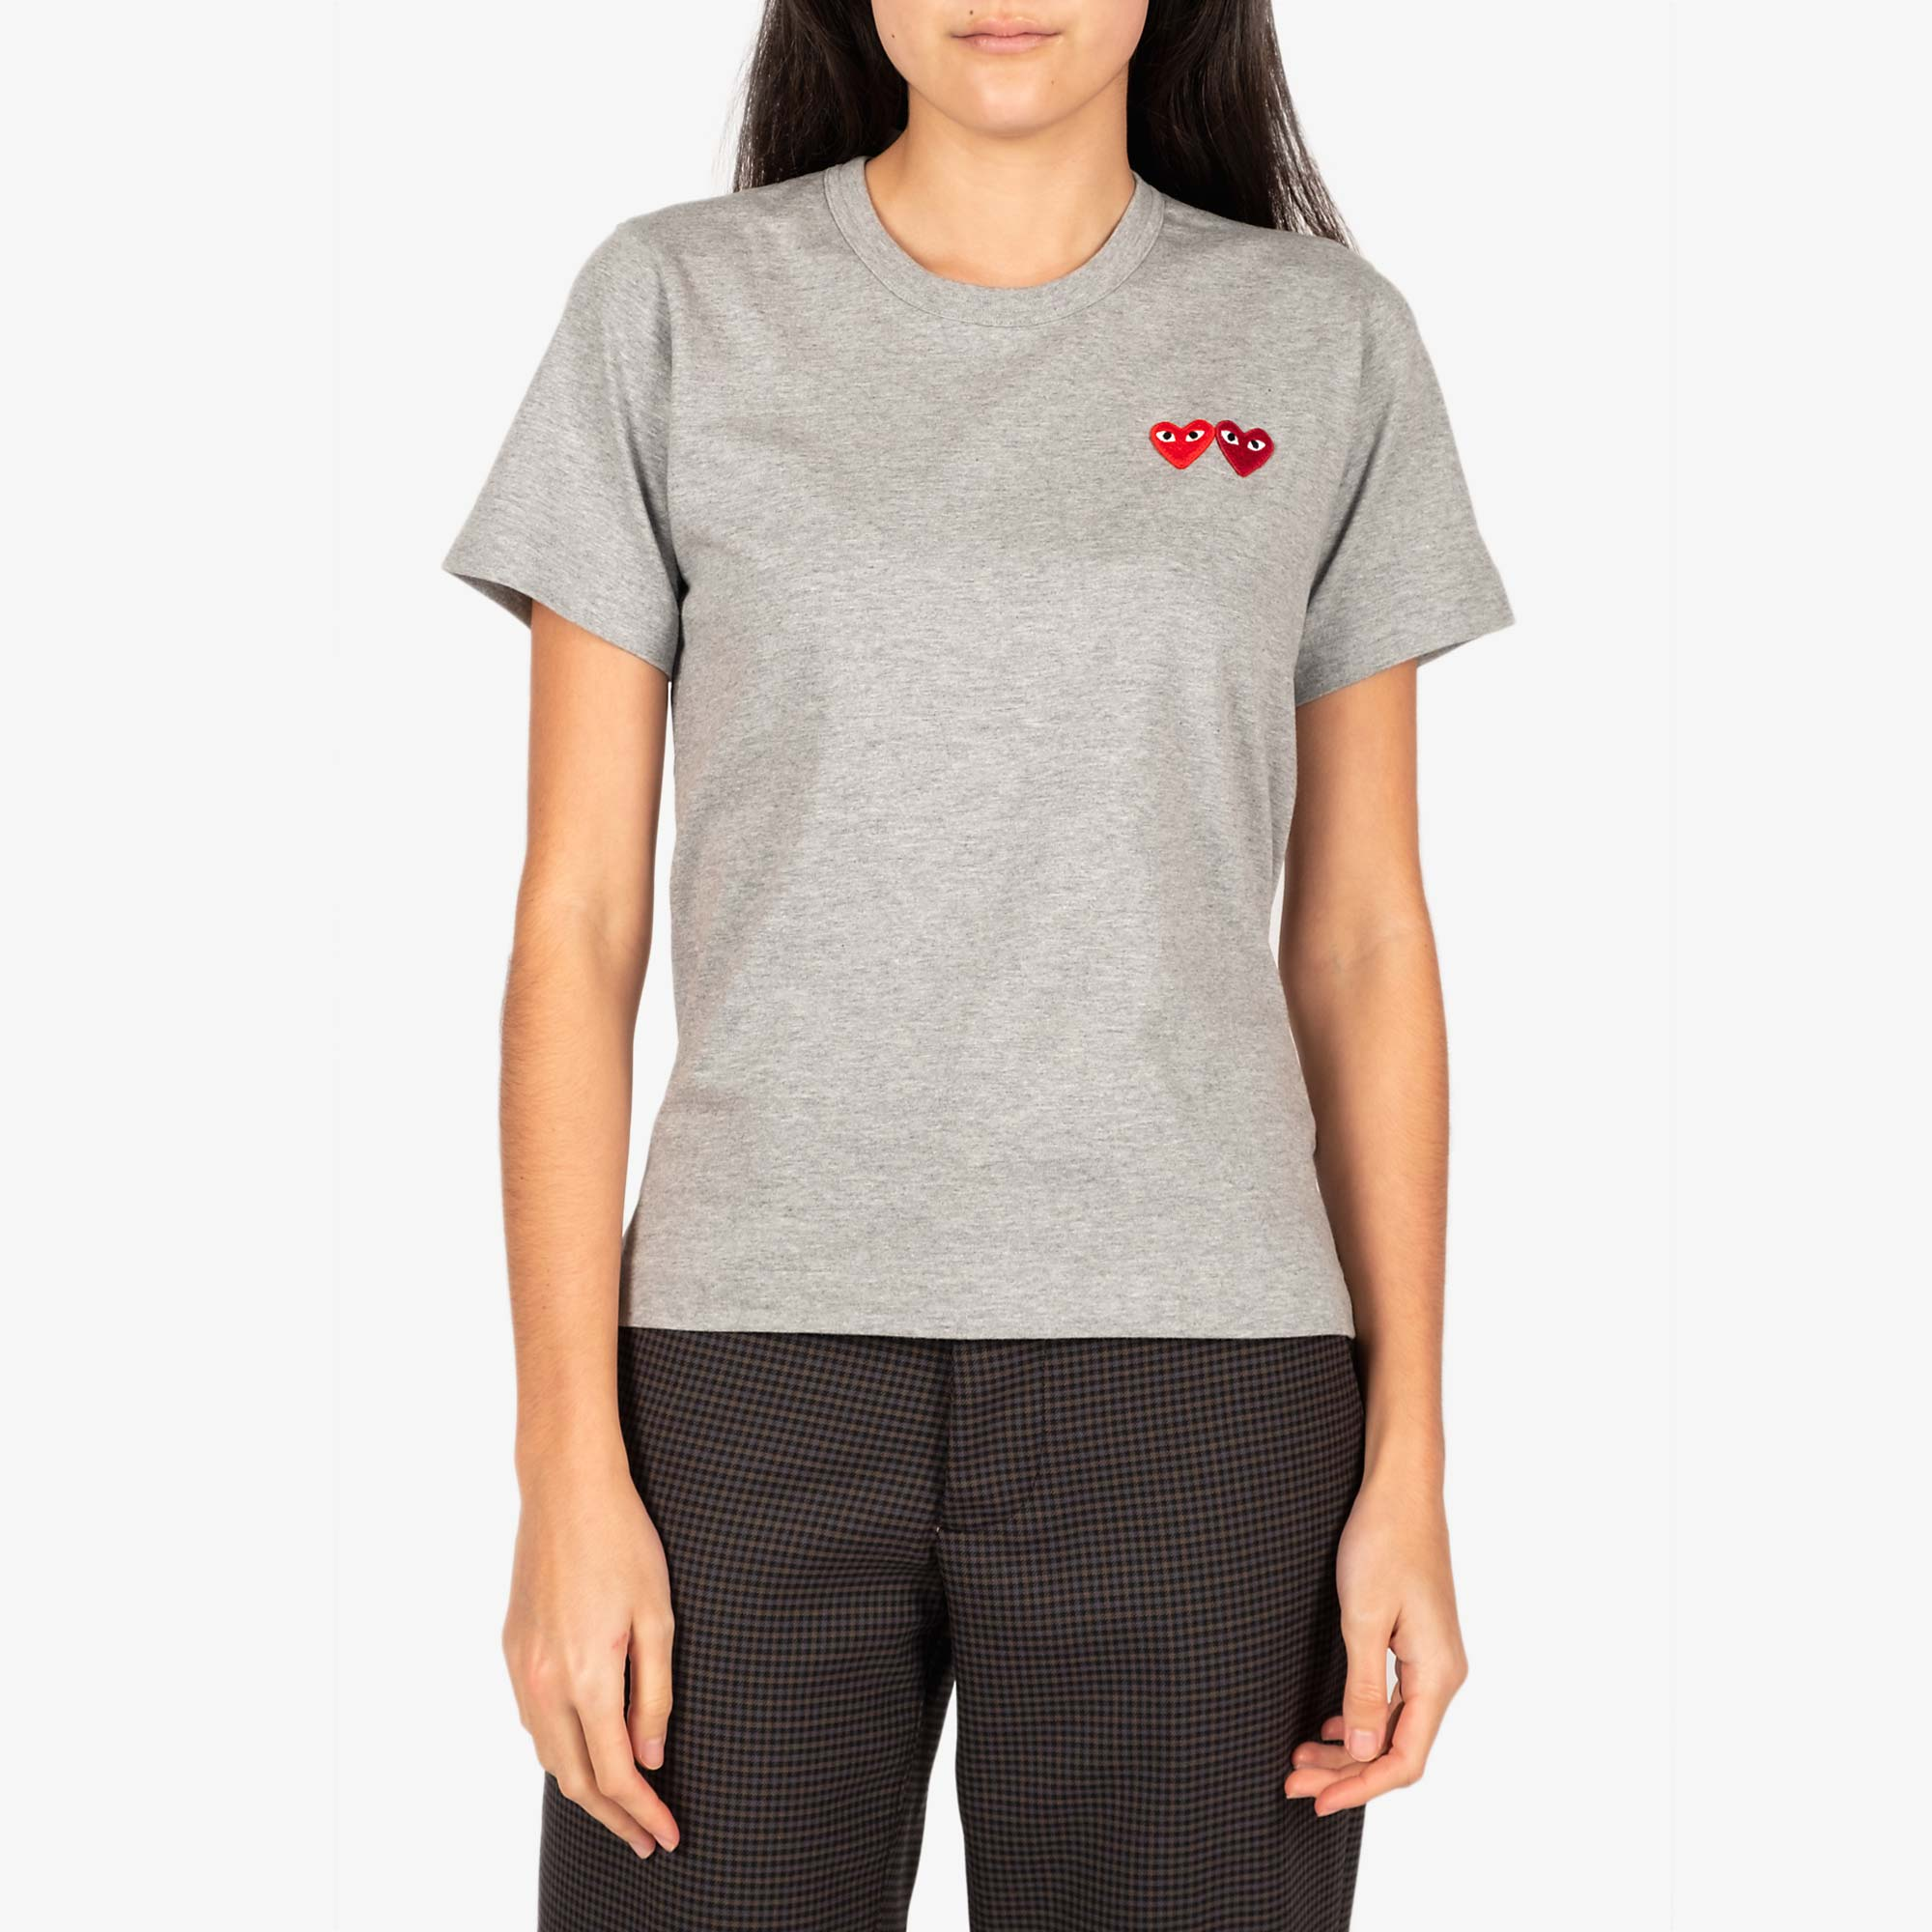 Comme des Garcons - PLAY Womens Double Heart Emblem Tee - Grey 1